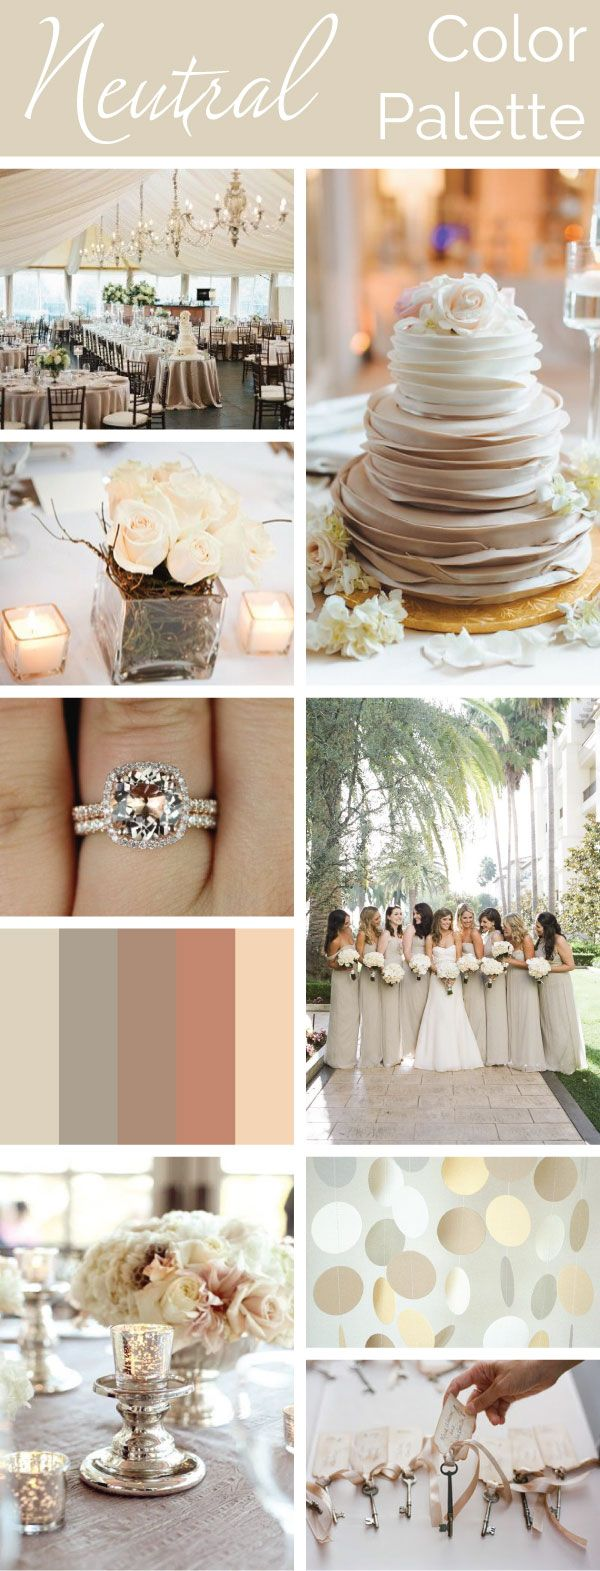 Wedding decorations simple  Neutral Color Palette Simple Elegant Versatile  Neutral color